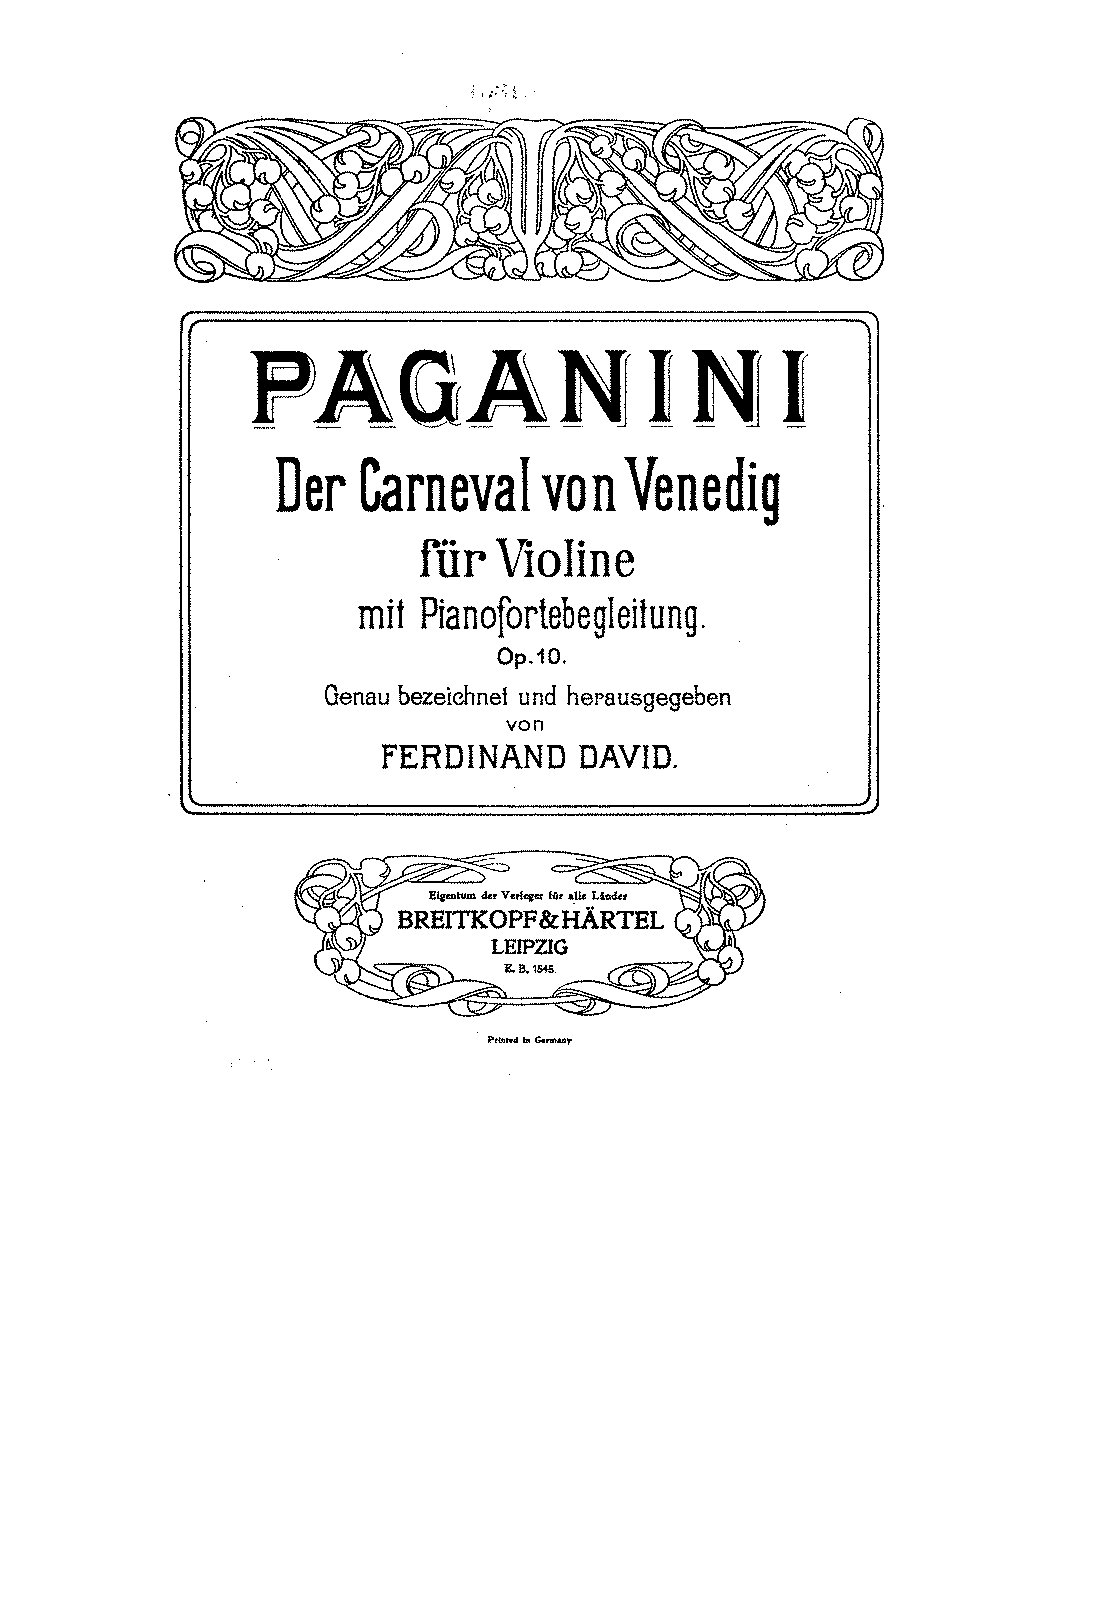 PMLP27296-Paganini - Der Carneval von Venedig for Violin and Piano Op10 (David) violin.pdf